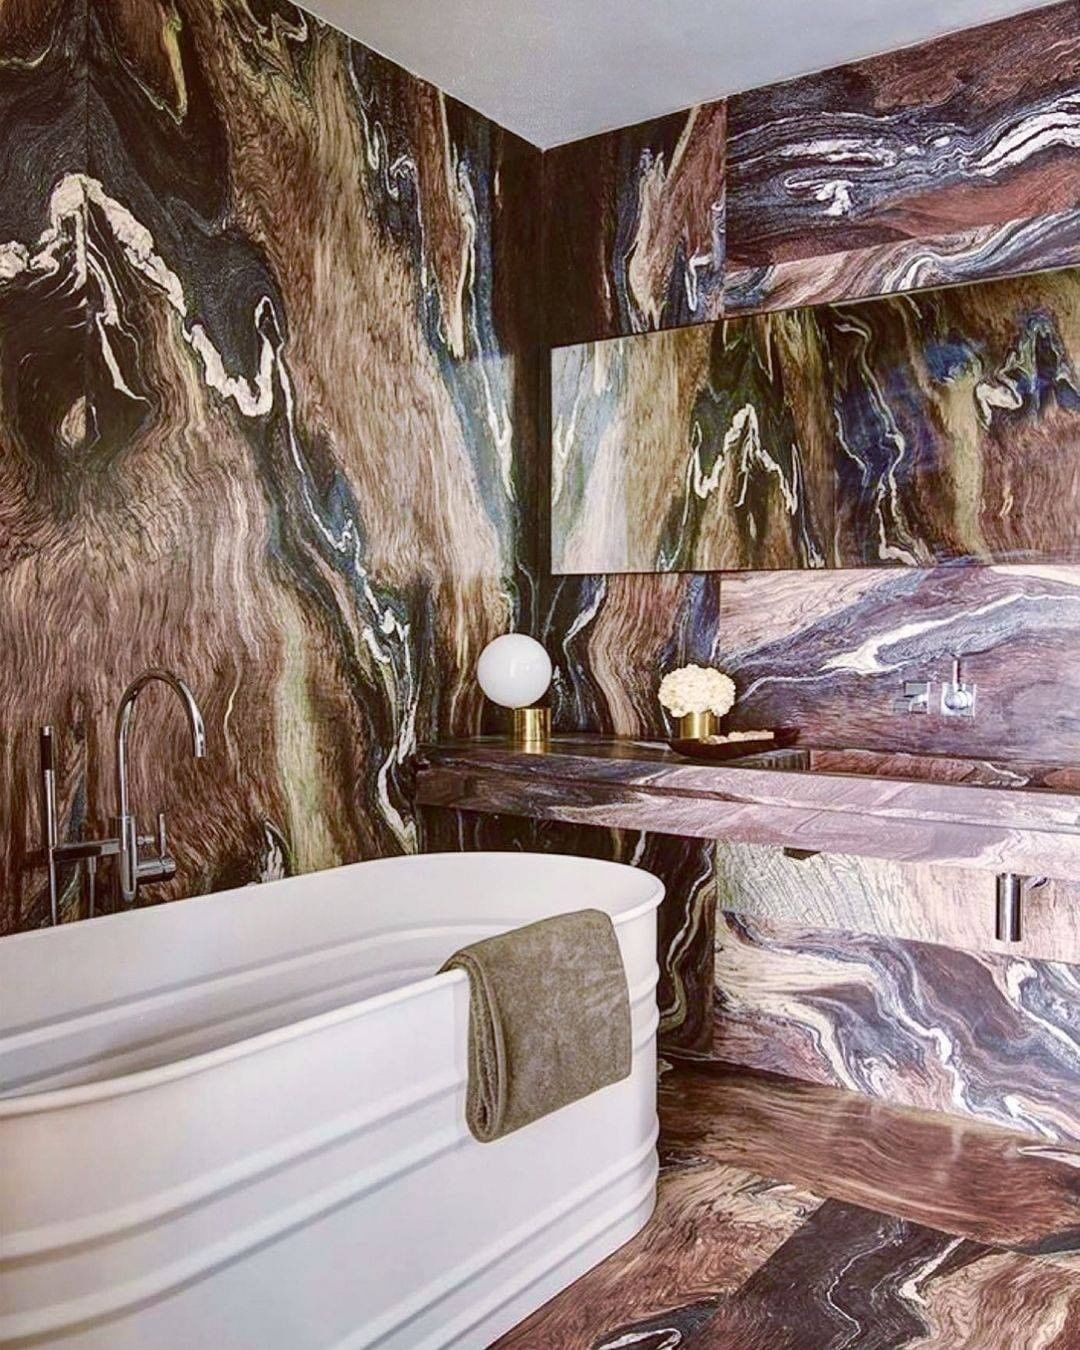 Multiple Colorful Marble Bathroom  colorful bathroom Colorful Bathrooms: Discover The Latest Bathroom Color Ideas 193209370 469521414139496 8548447922318126238 n